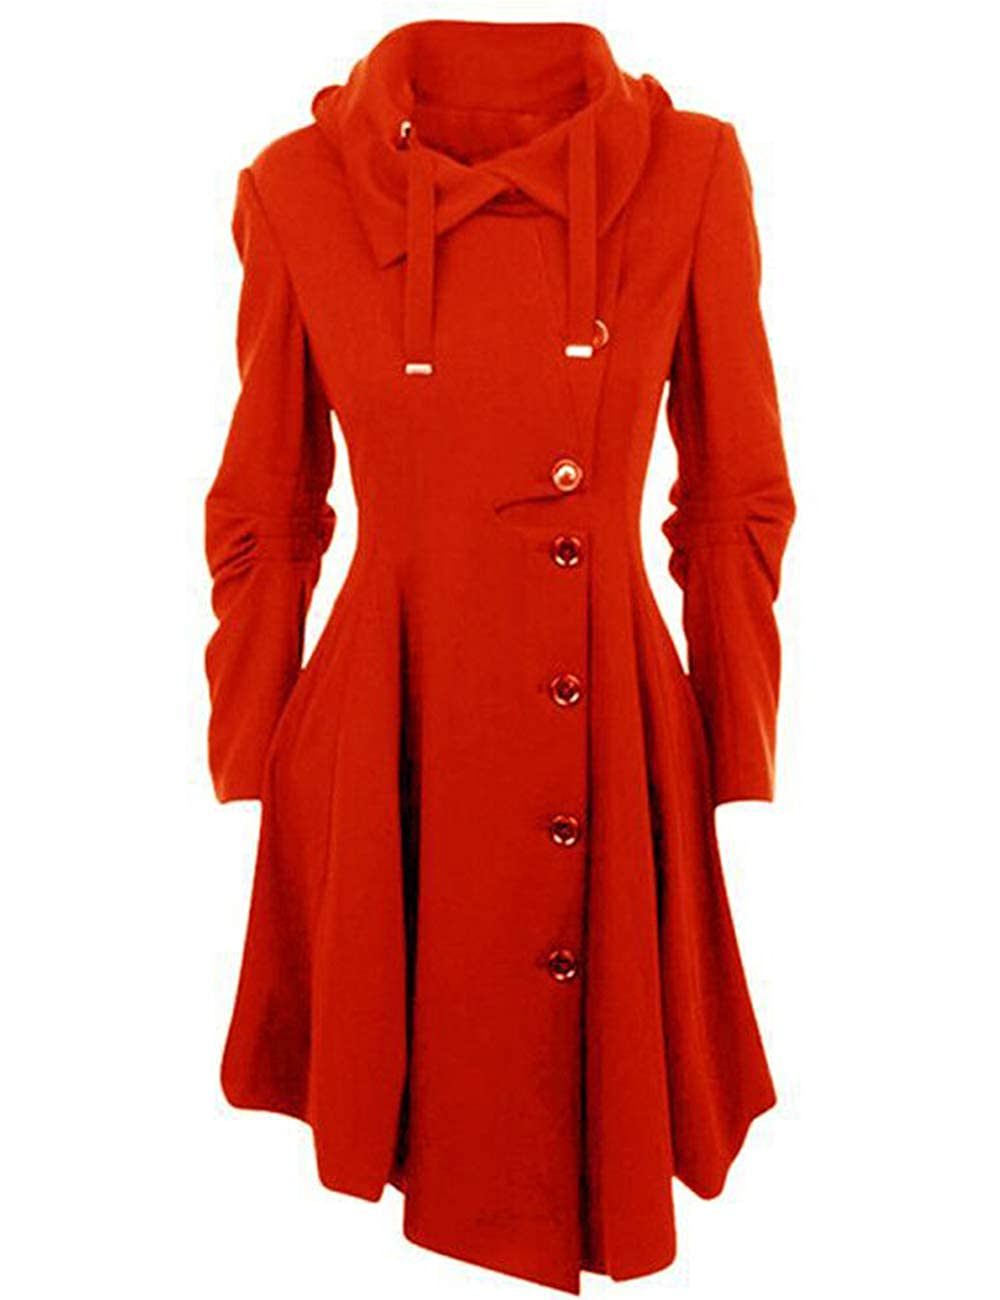 SOMTHRON Women Oversize Wool Outerwear Jacket Hooded Button Closure Long Trench Coat